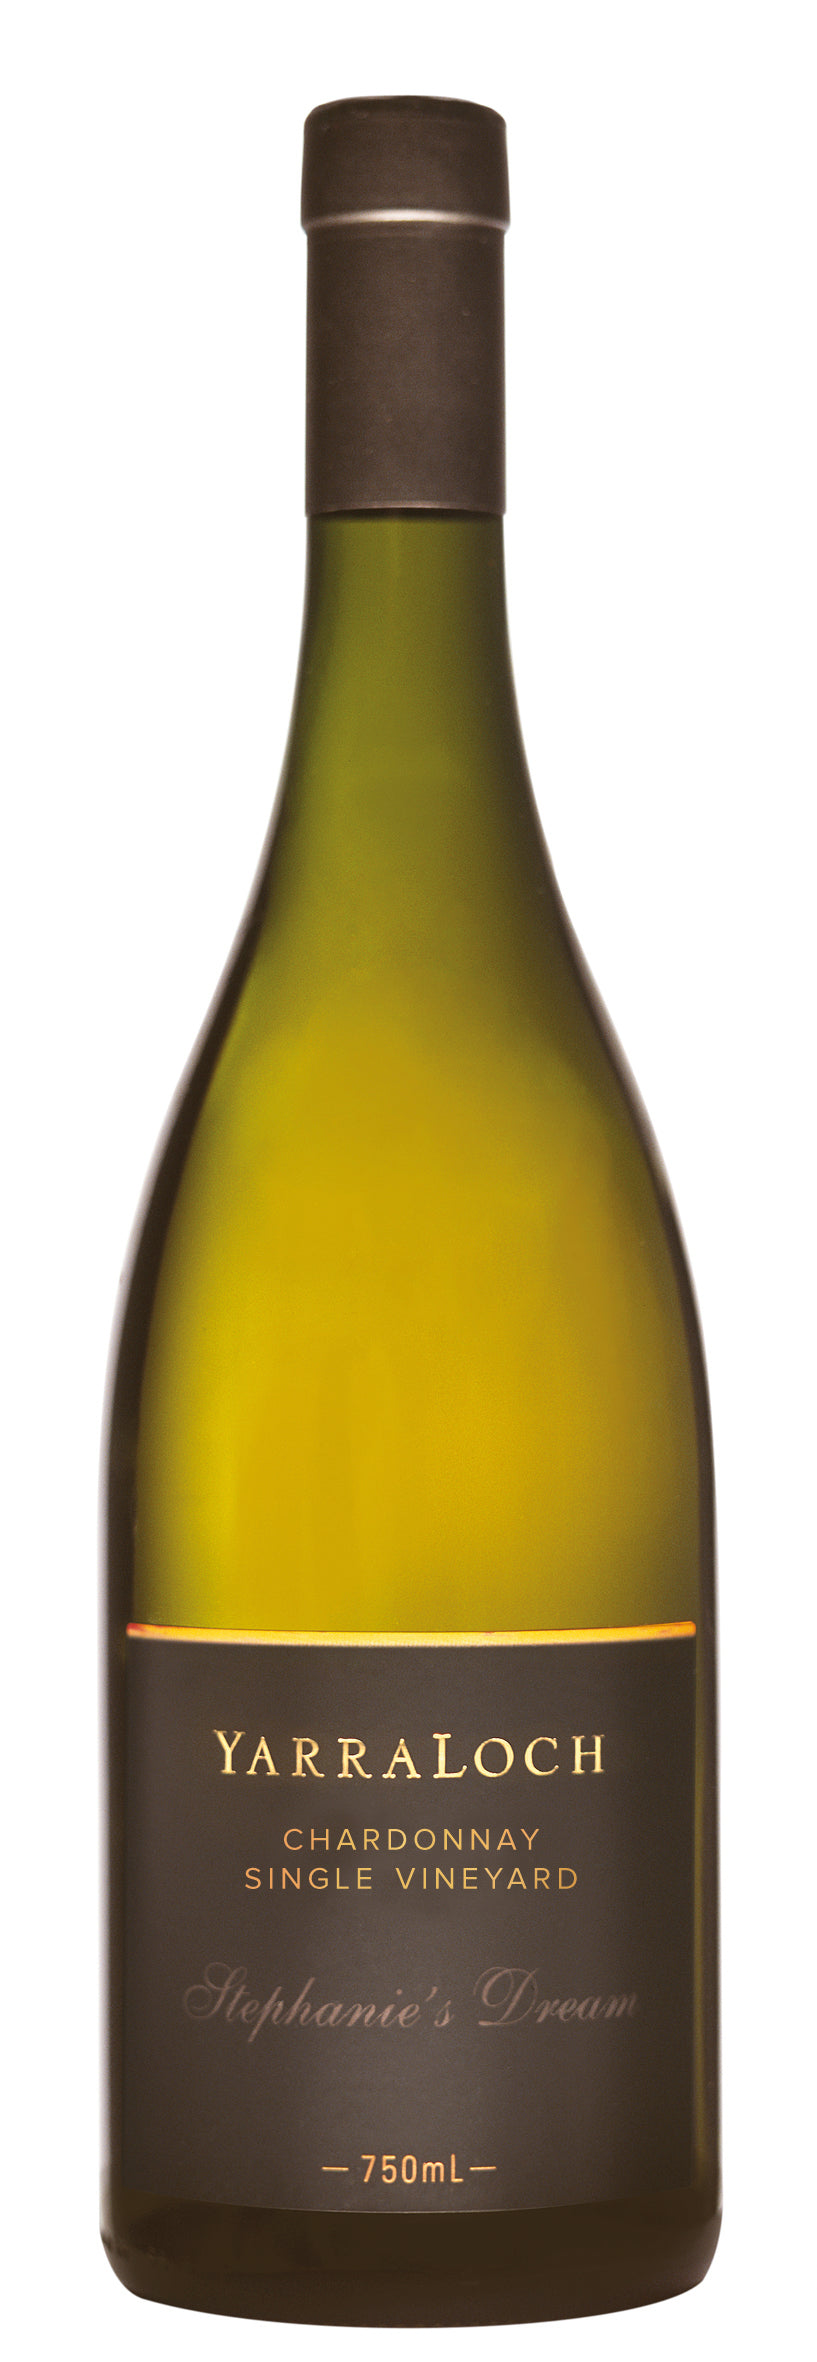 YarraLoch Stephanie's Dream Chardonnay 2012